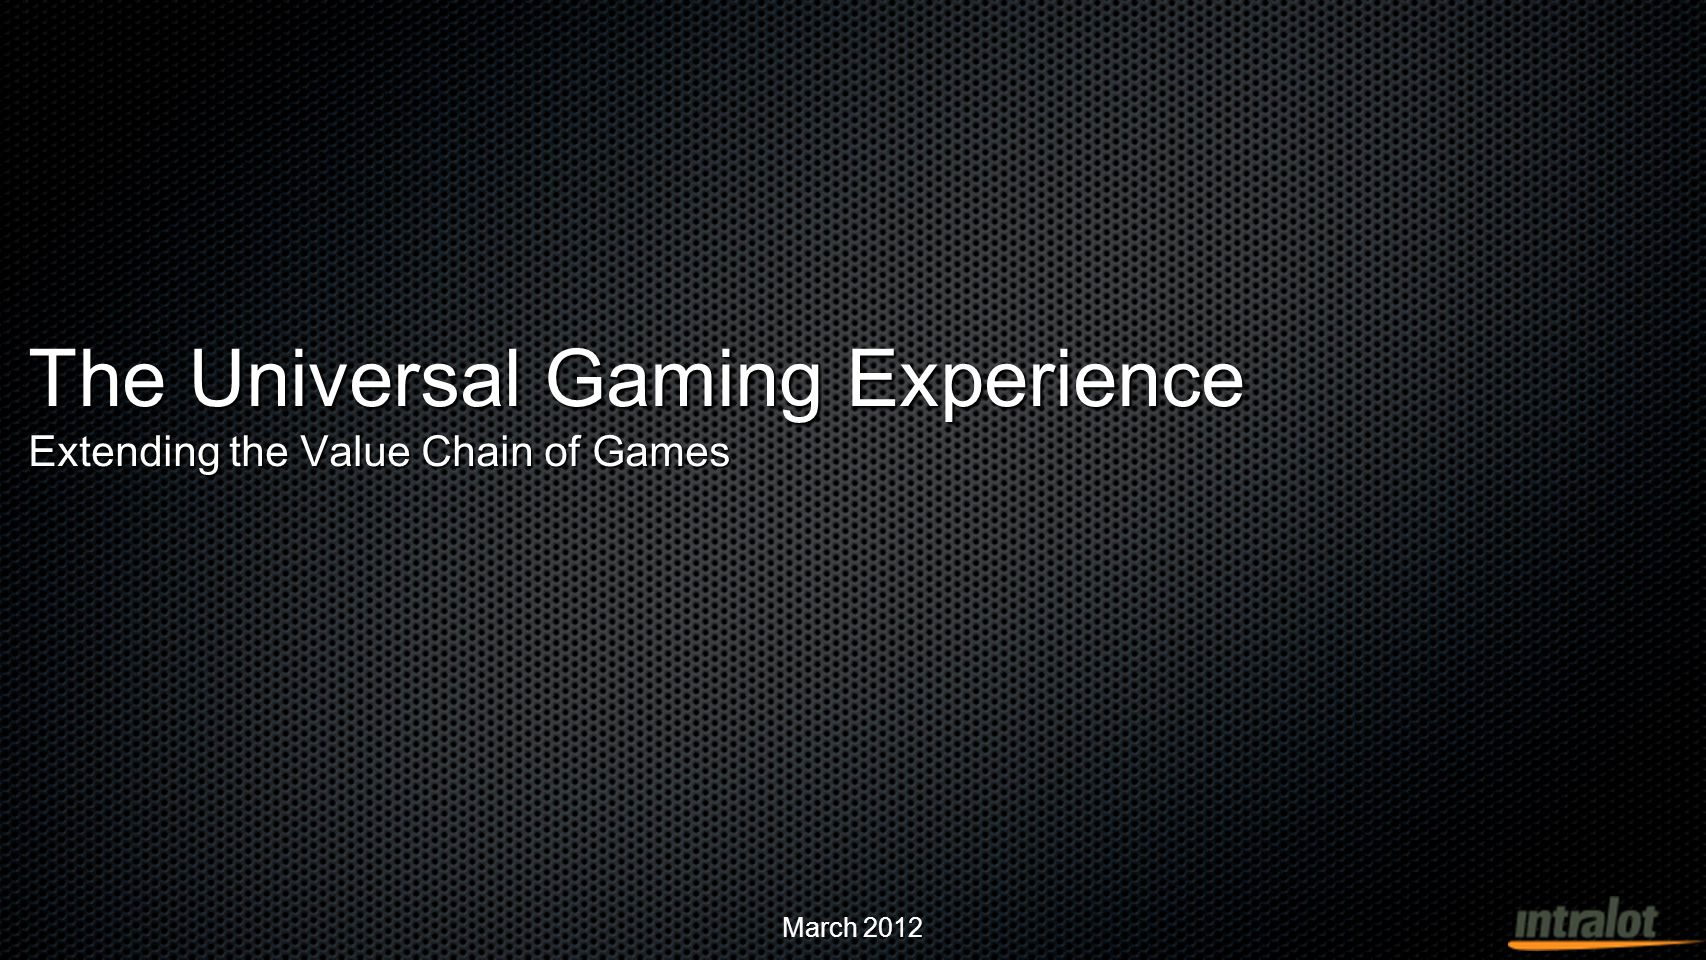 March 2012 The value chain of games gamesdistribution touch points experienceplayer More than ever, we experience change waves in every aspect of gaming 2